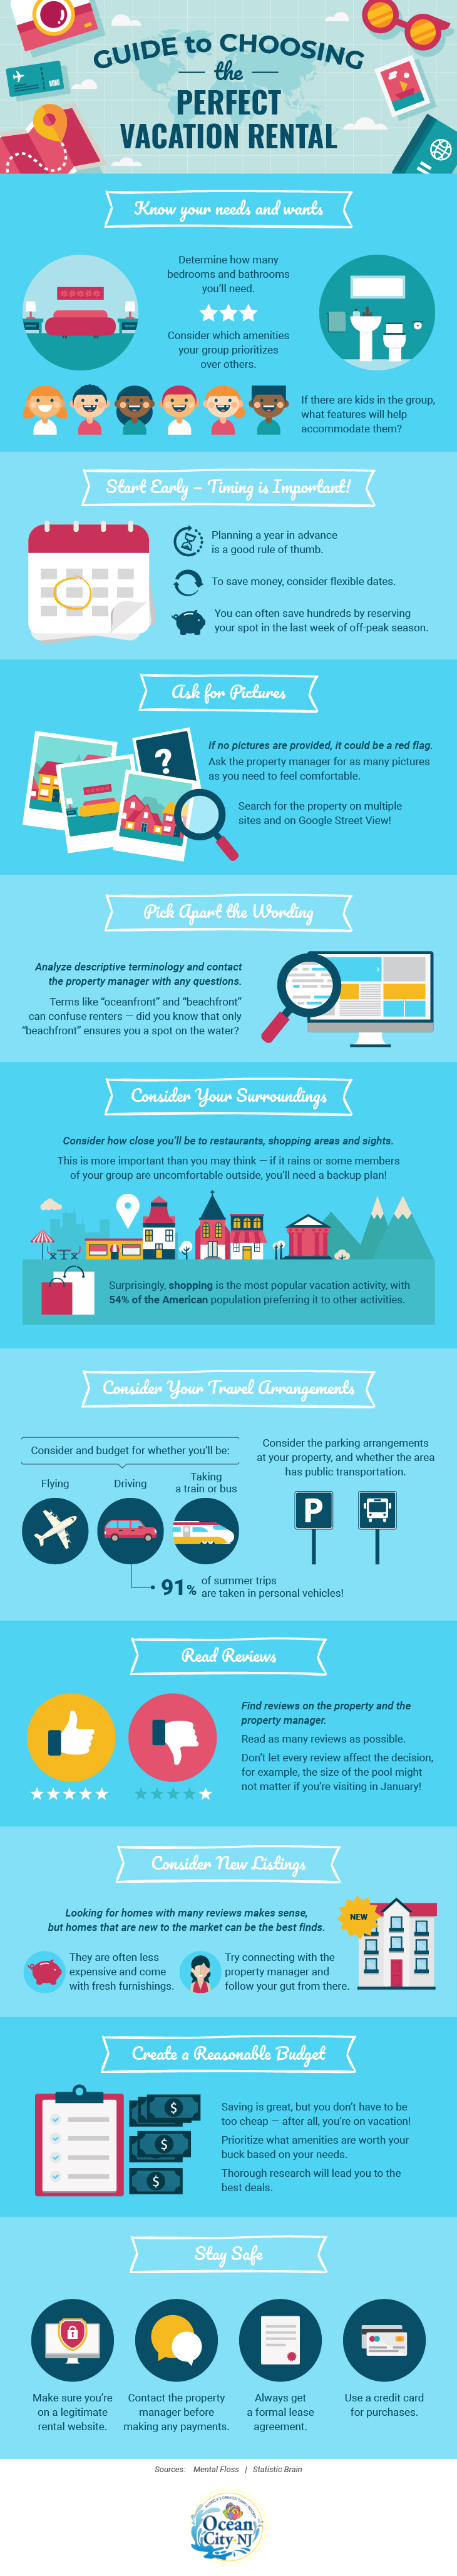 Guide to Choosing the Perfect Vacation Rental [Infographic]